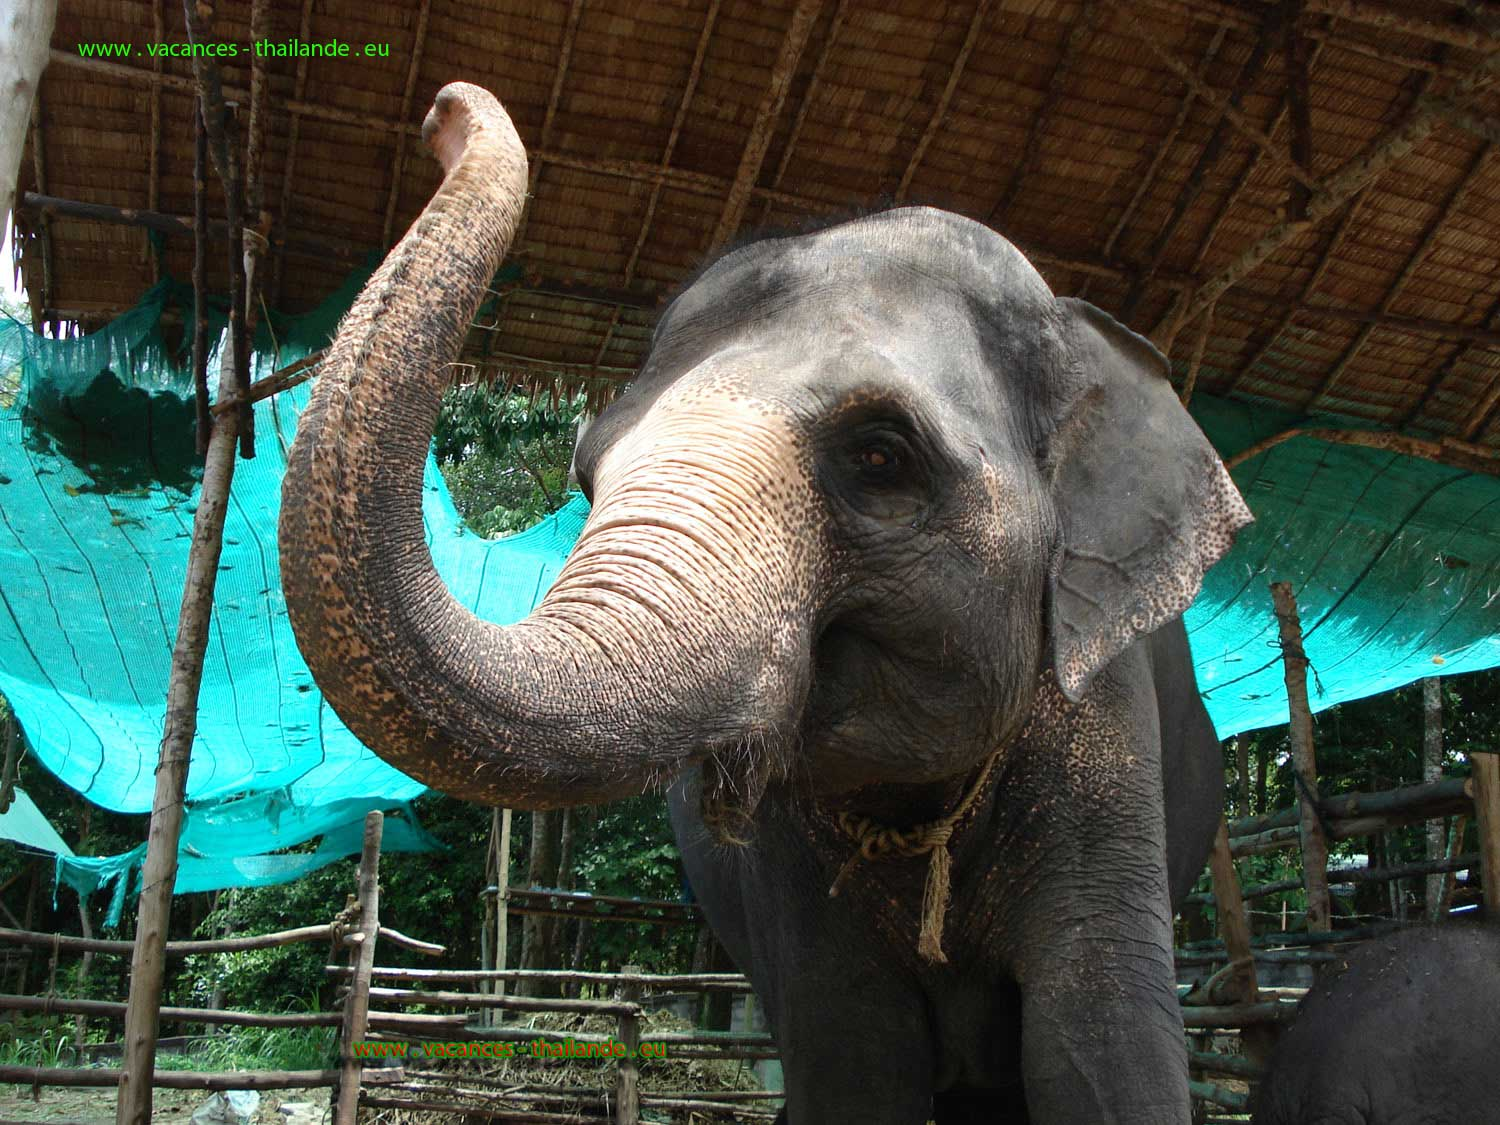 villa rental Paris with pool and ride with elephants on the island of Koh Samui in Thailand